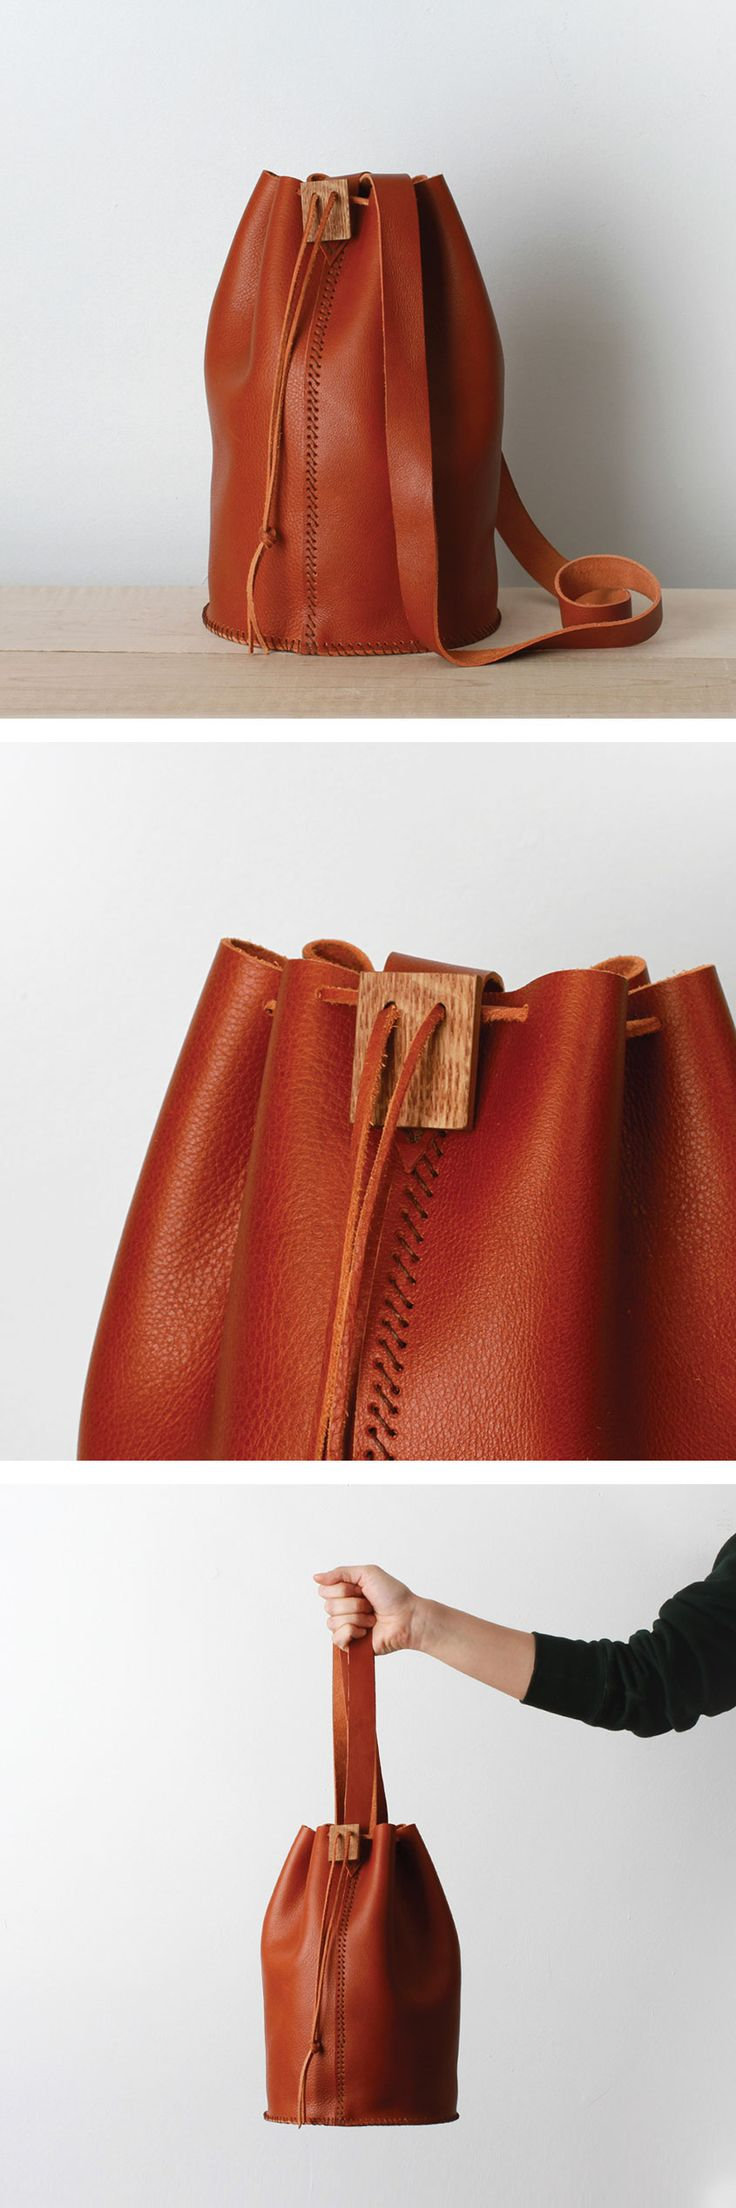 Handmade Leather Perfection from Scarr